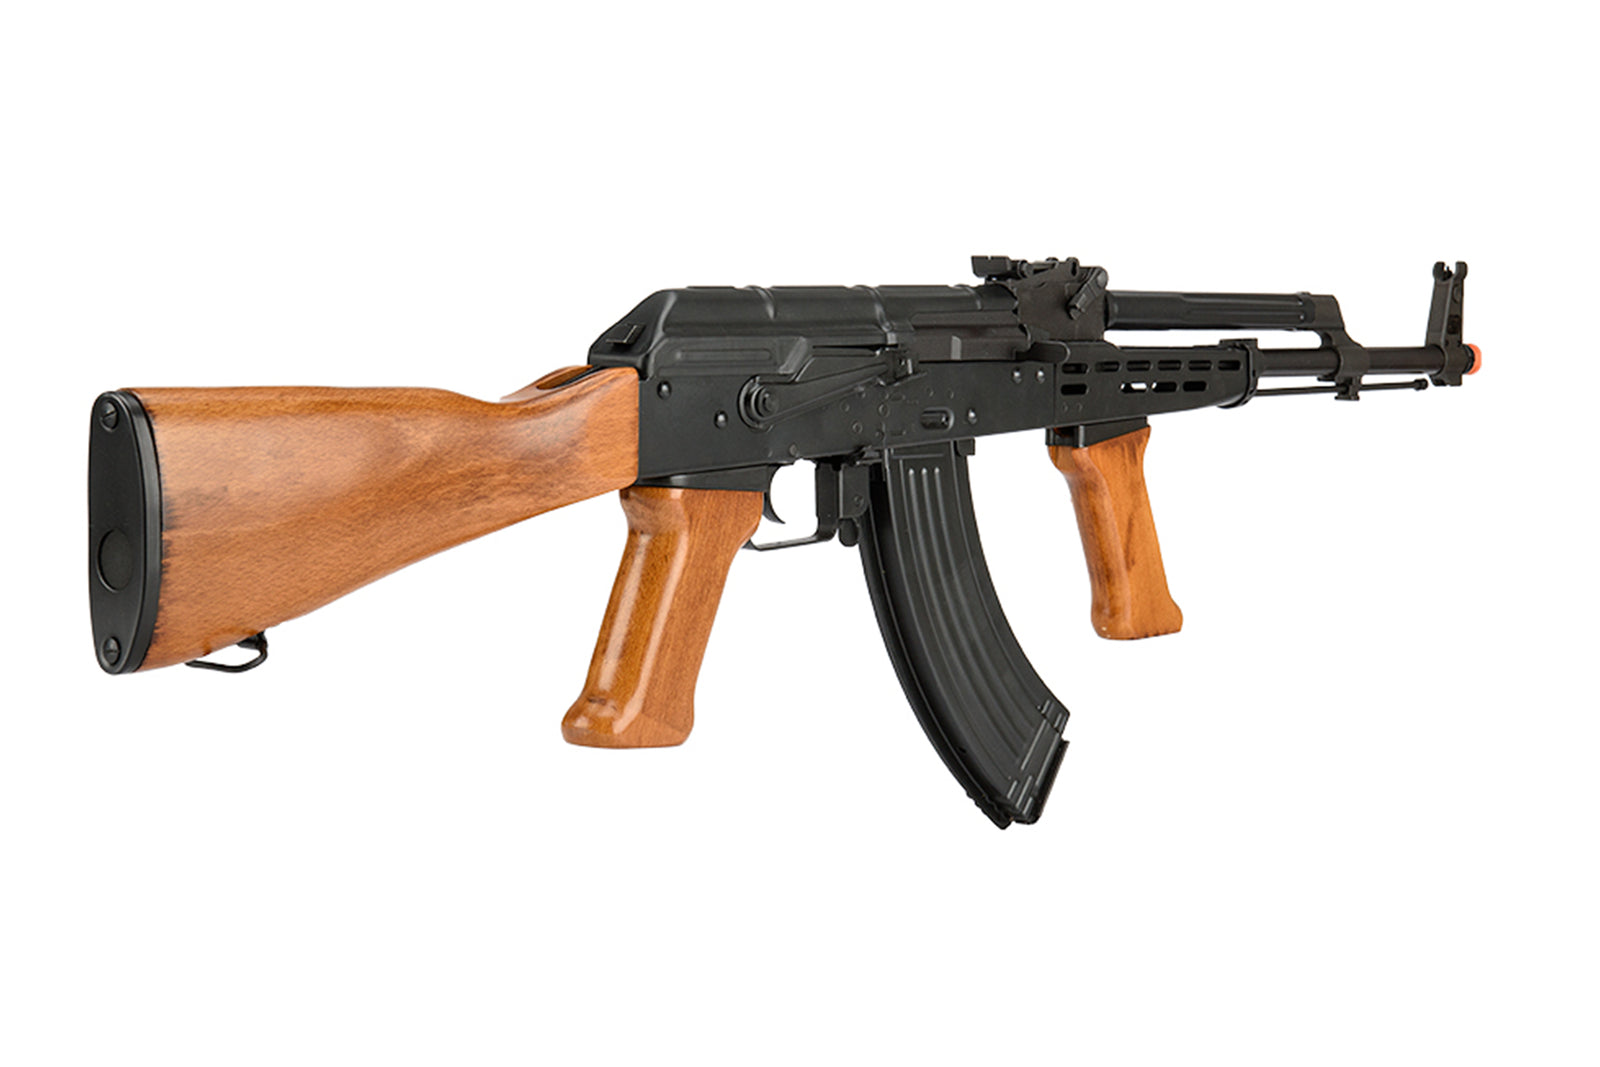 LCT-LCKM63-AEG LCT Real Wood Full Metal AK47 w/ Foregrip